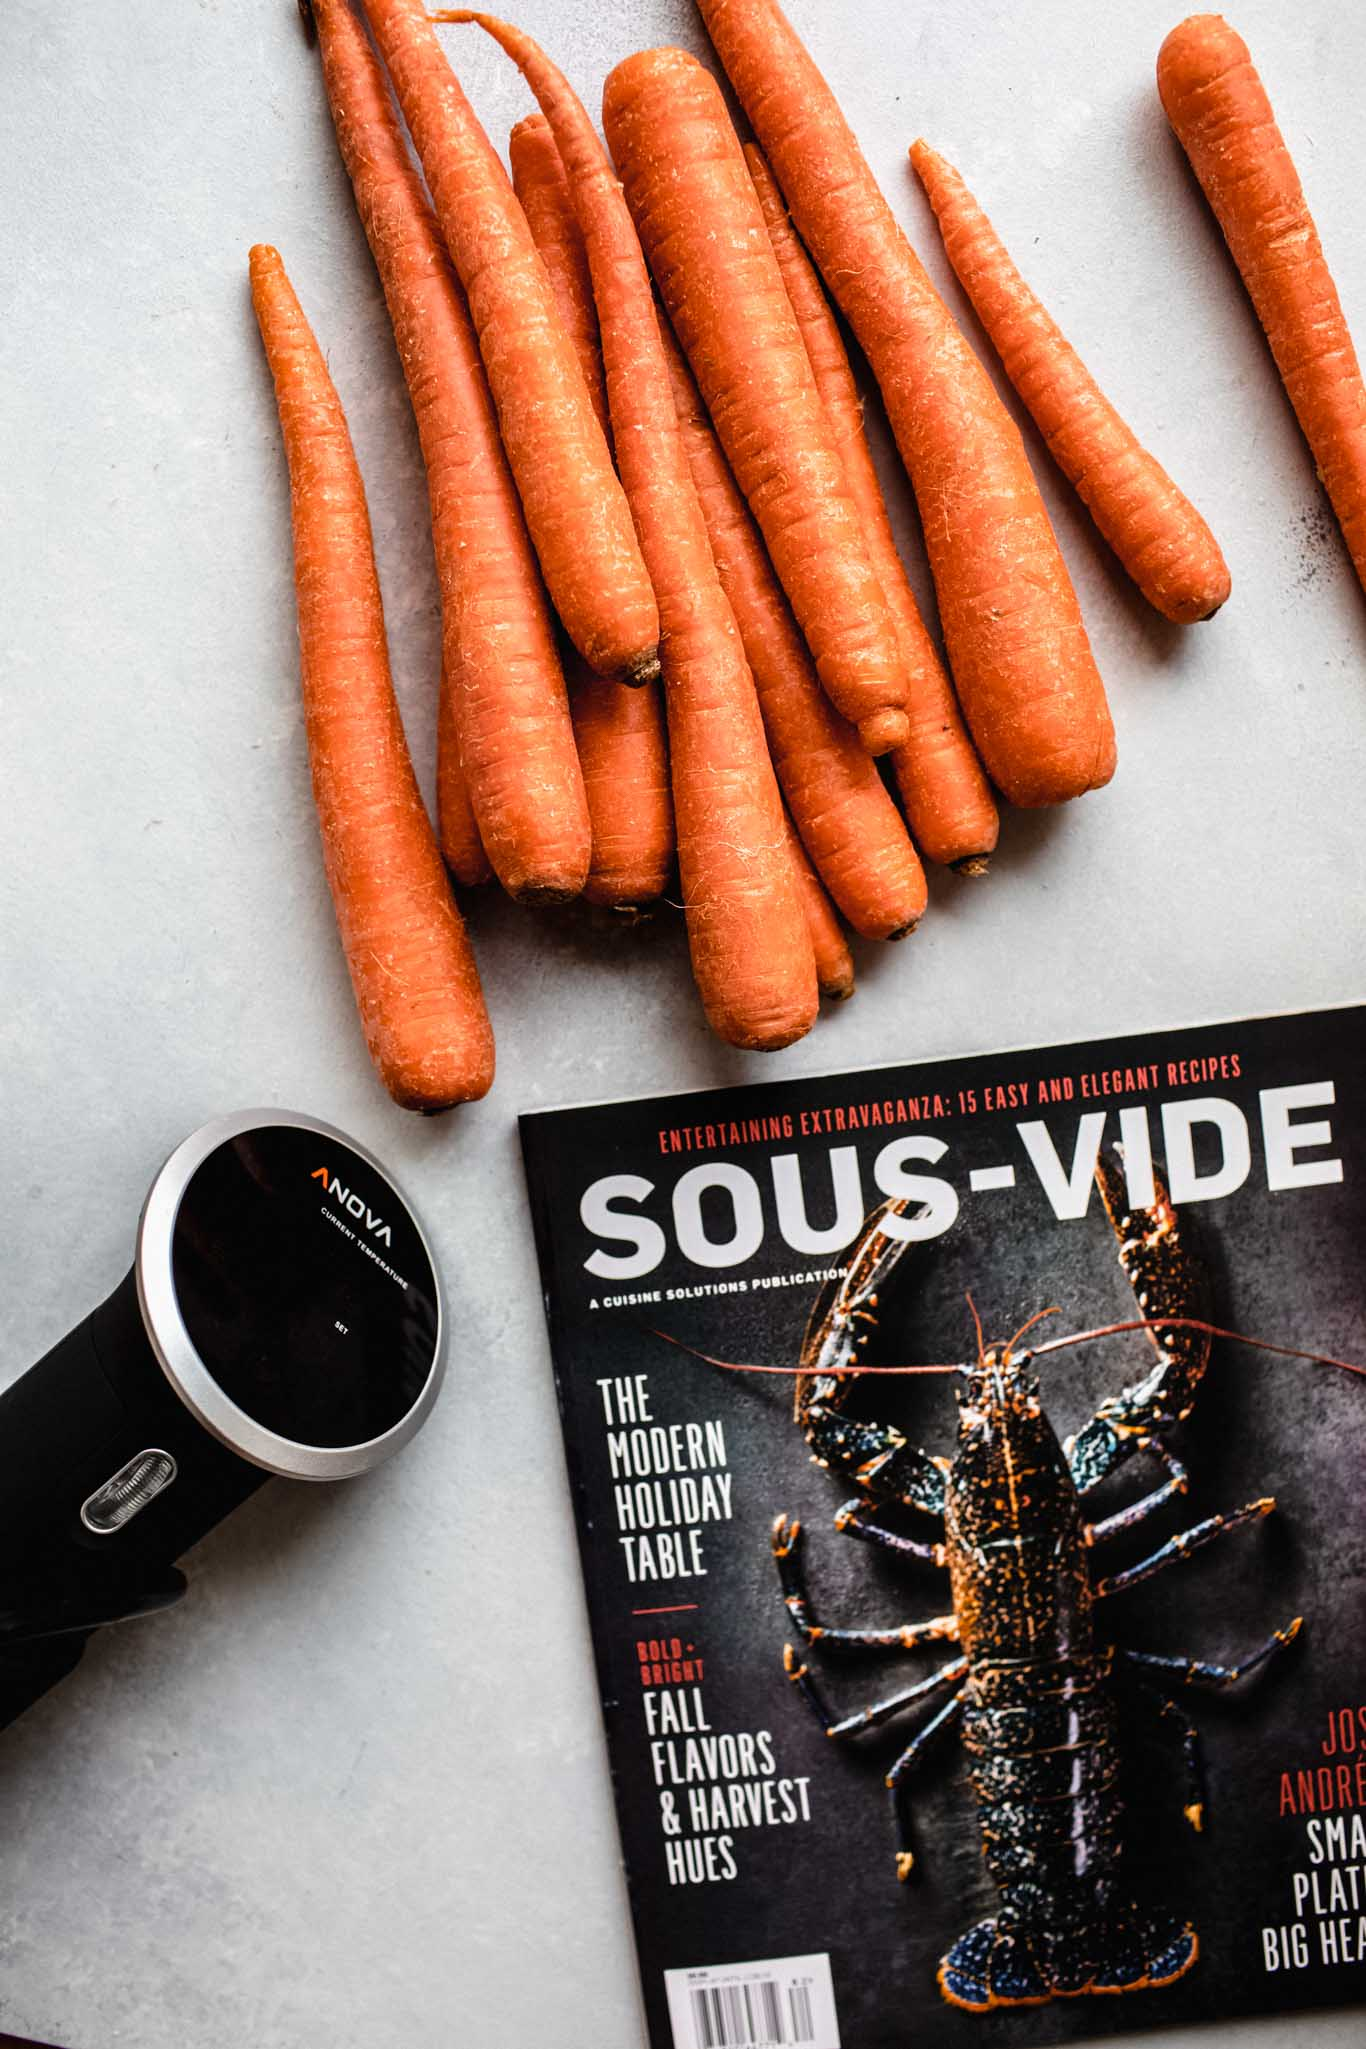 Carrots next to sous vide and magazine.